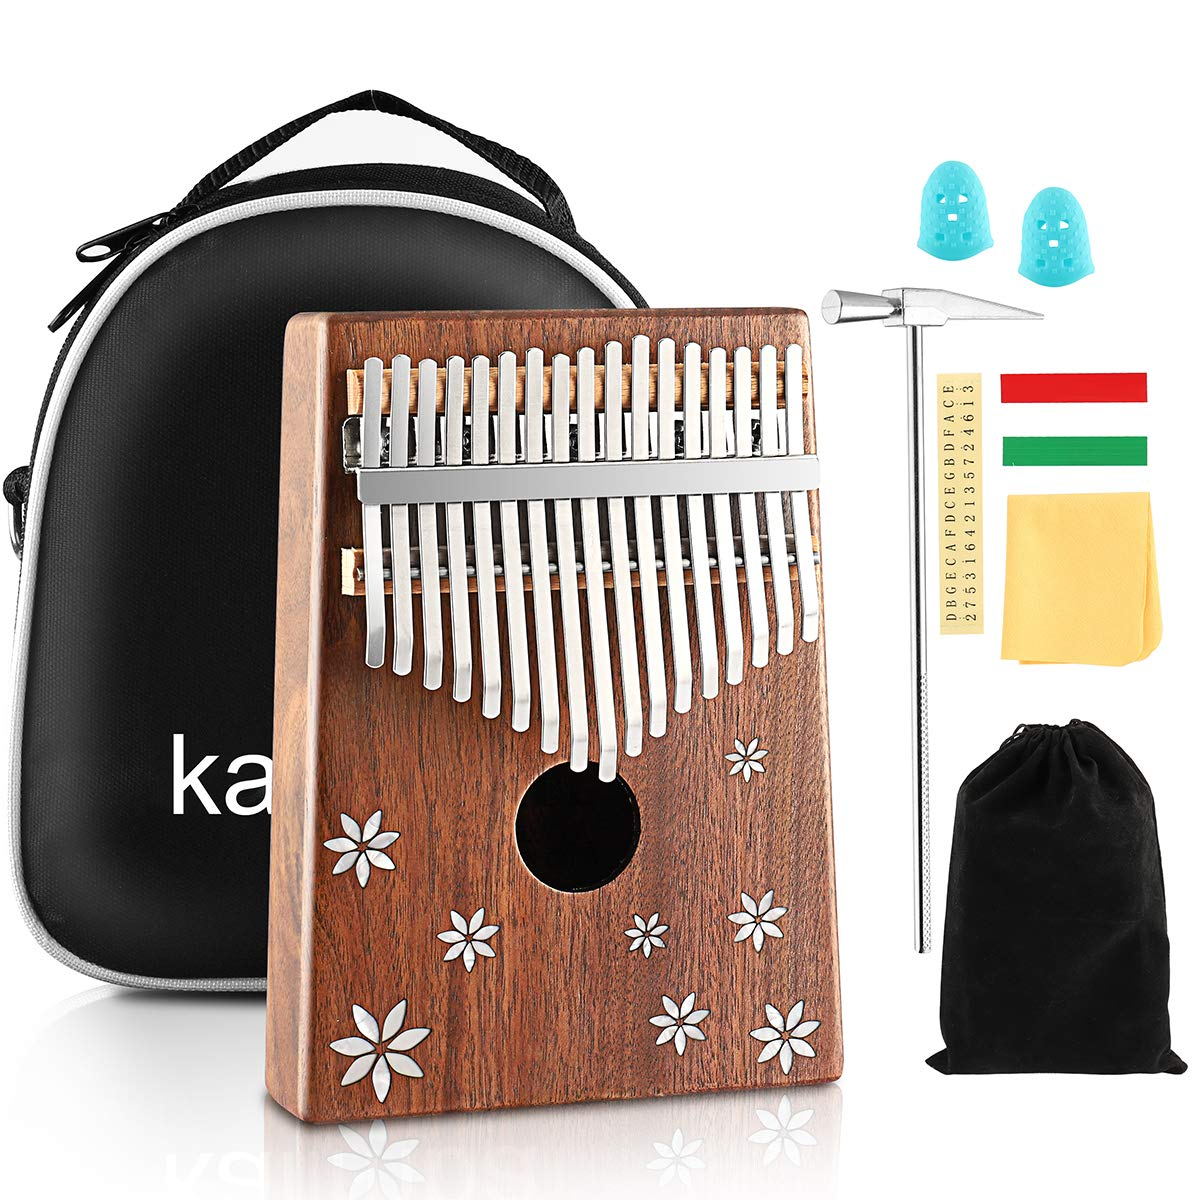 Kalimba 17 Key Thumb Piano Finger Piano Mahogany Wood Body Mbira 17 Tone Musical Instrument for Kids Gift Beginner Musician with Music Book Tune Hammer and Bag